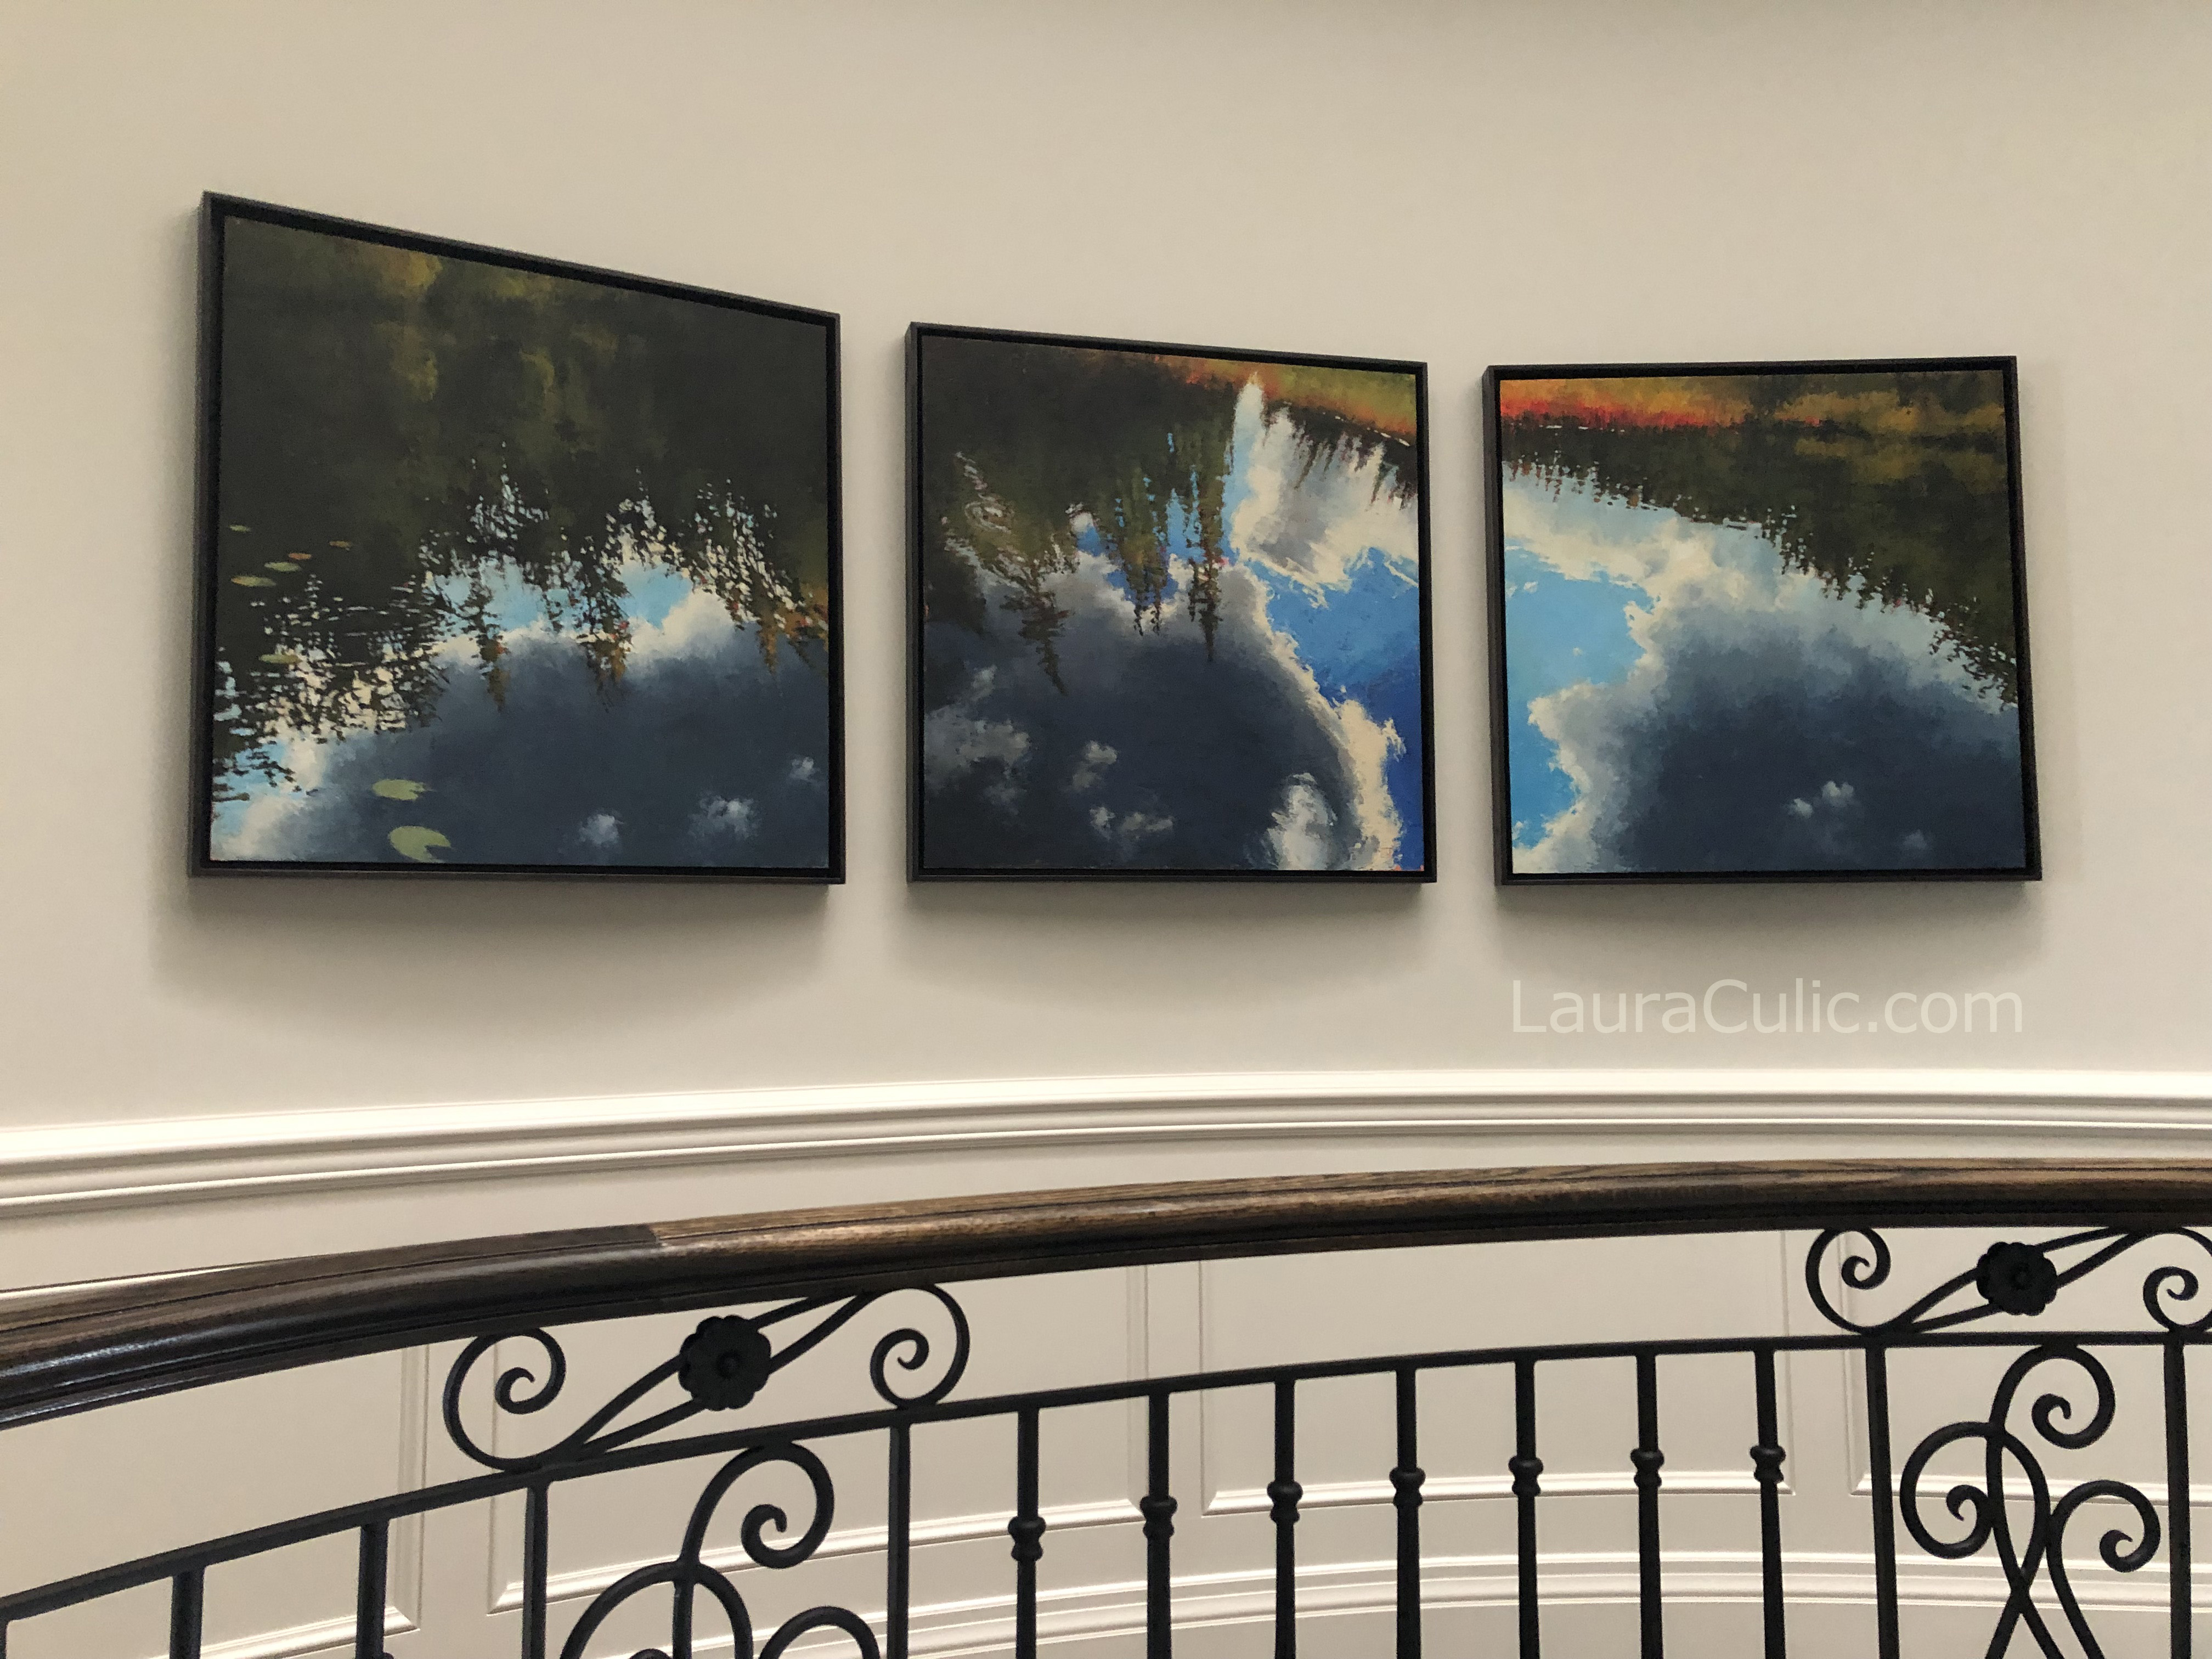 Three paintings of wetlands by Artist Laura Culic hanging on wall